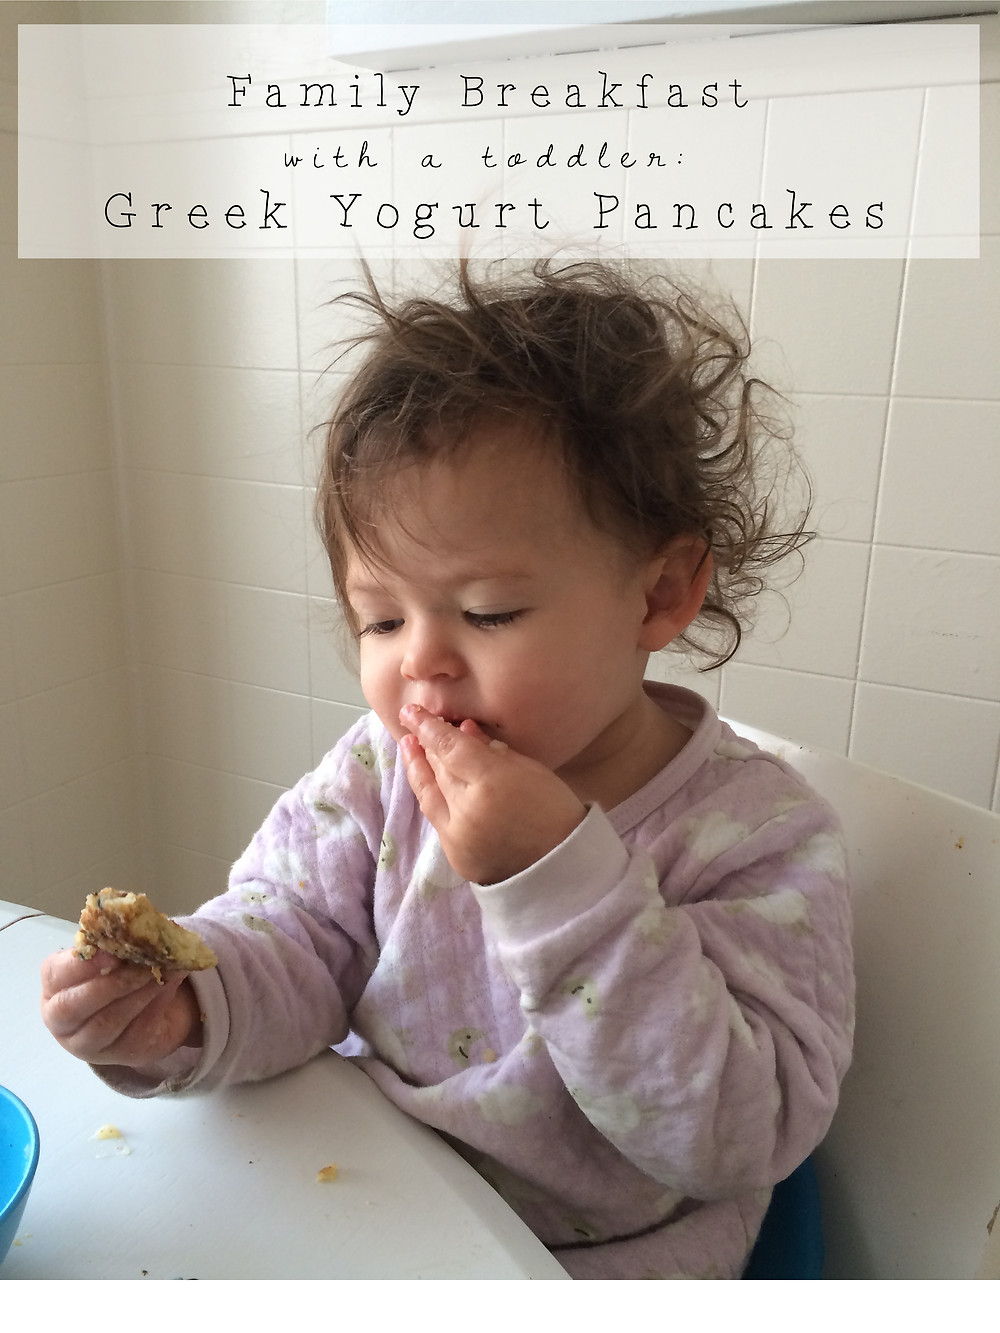 Greek Yogurt Pancakes.jpg